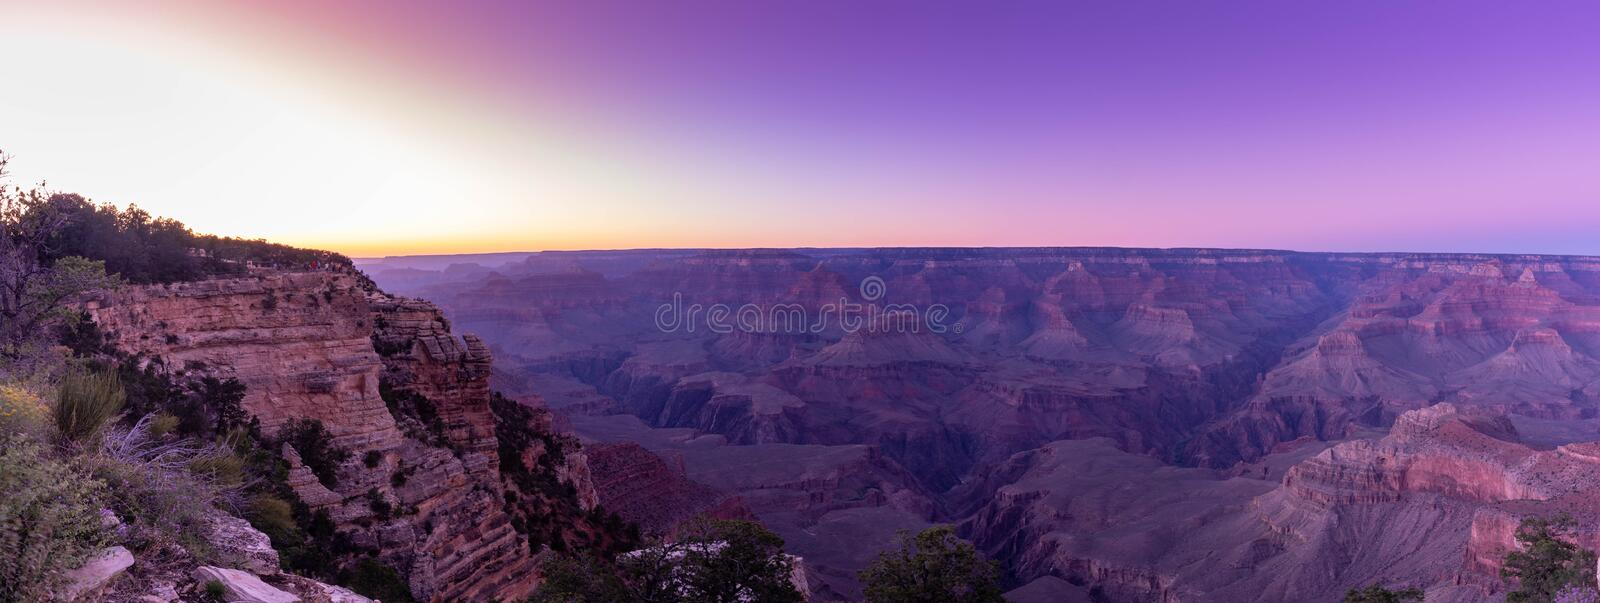 Mather view point of Grand Canyon during sunset time , Arizona royalty free stock photo